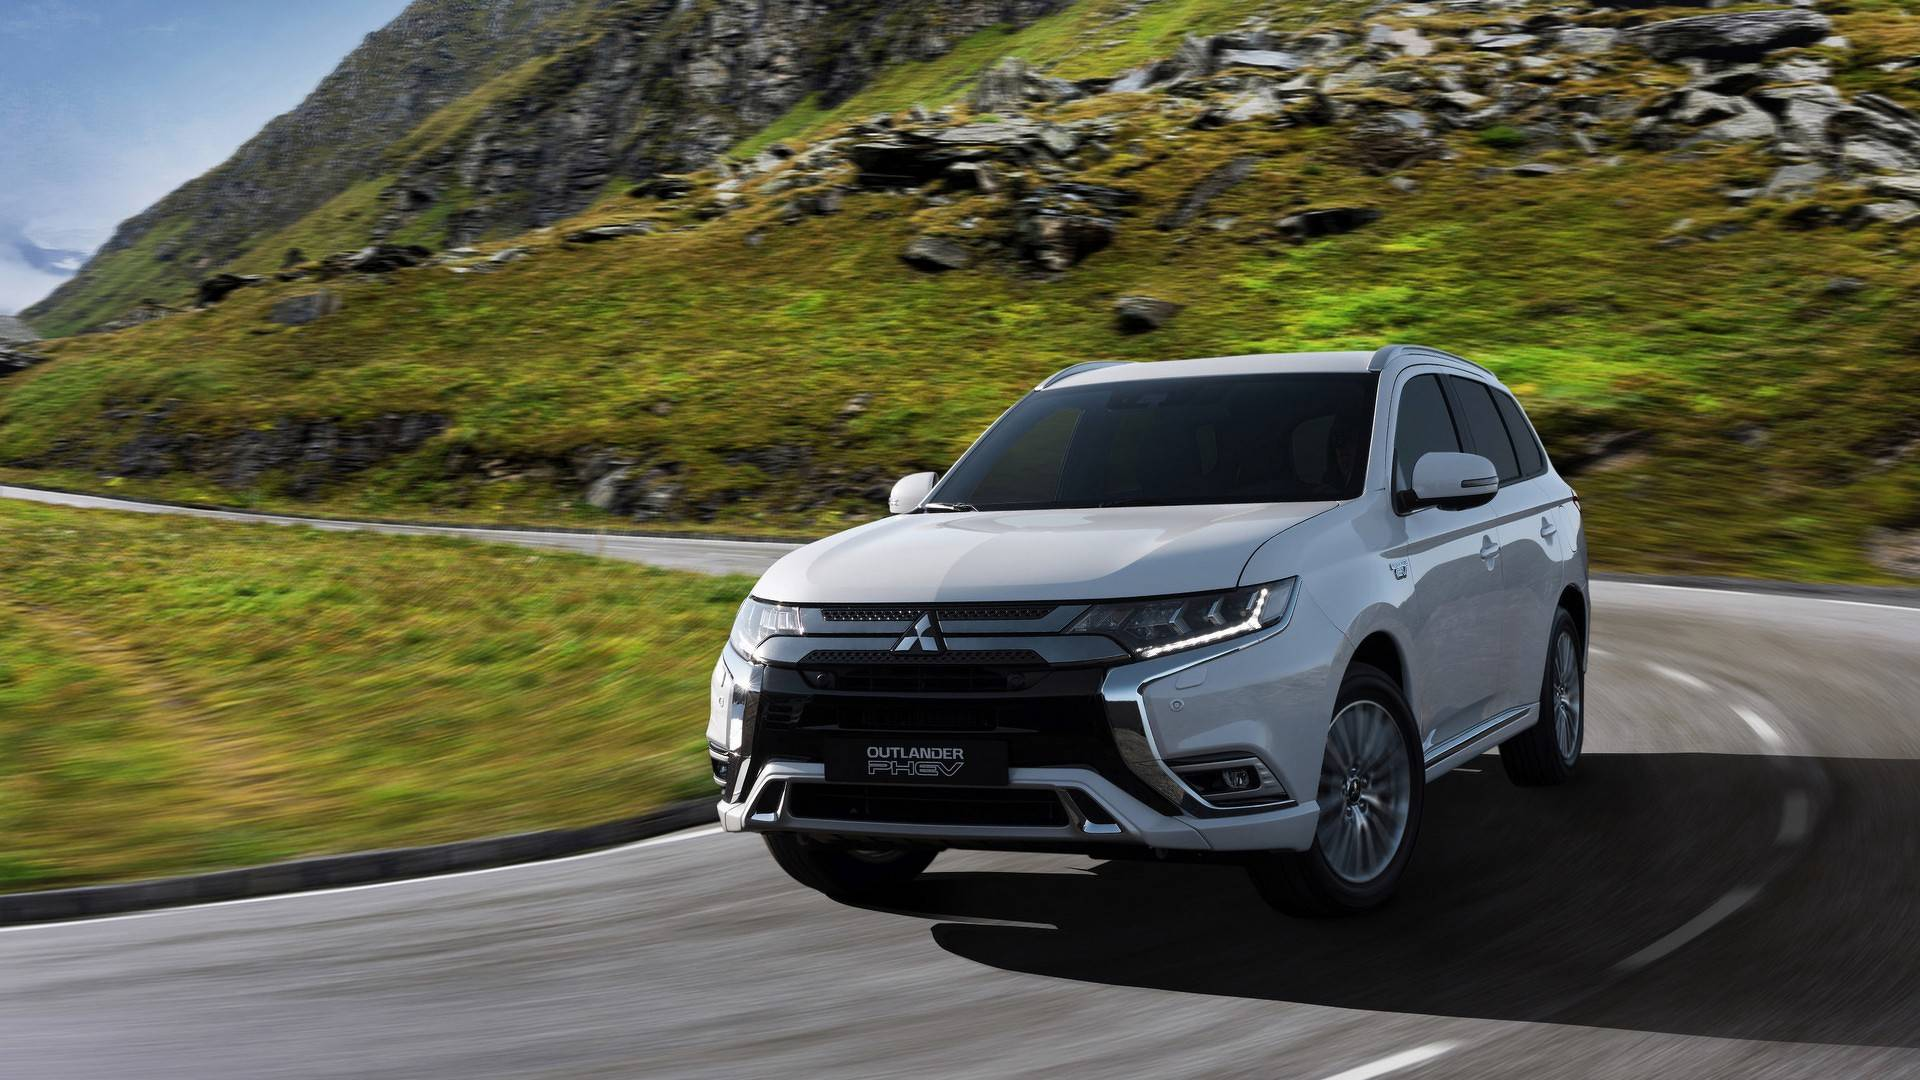 2019 Mitsubishi Outlander PHEV Upgrades To 2.4-liter ...